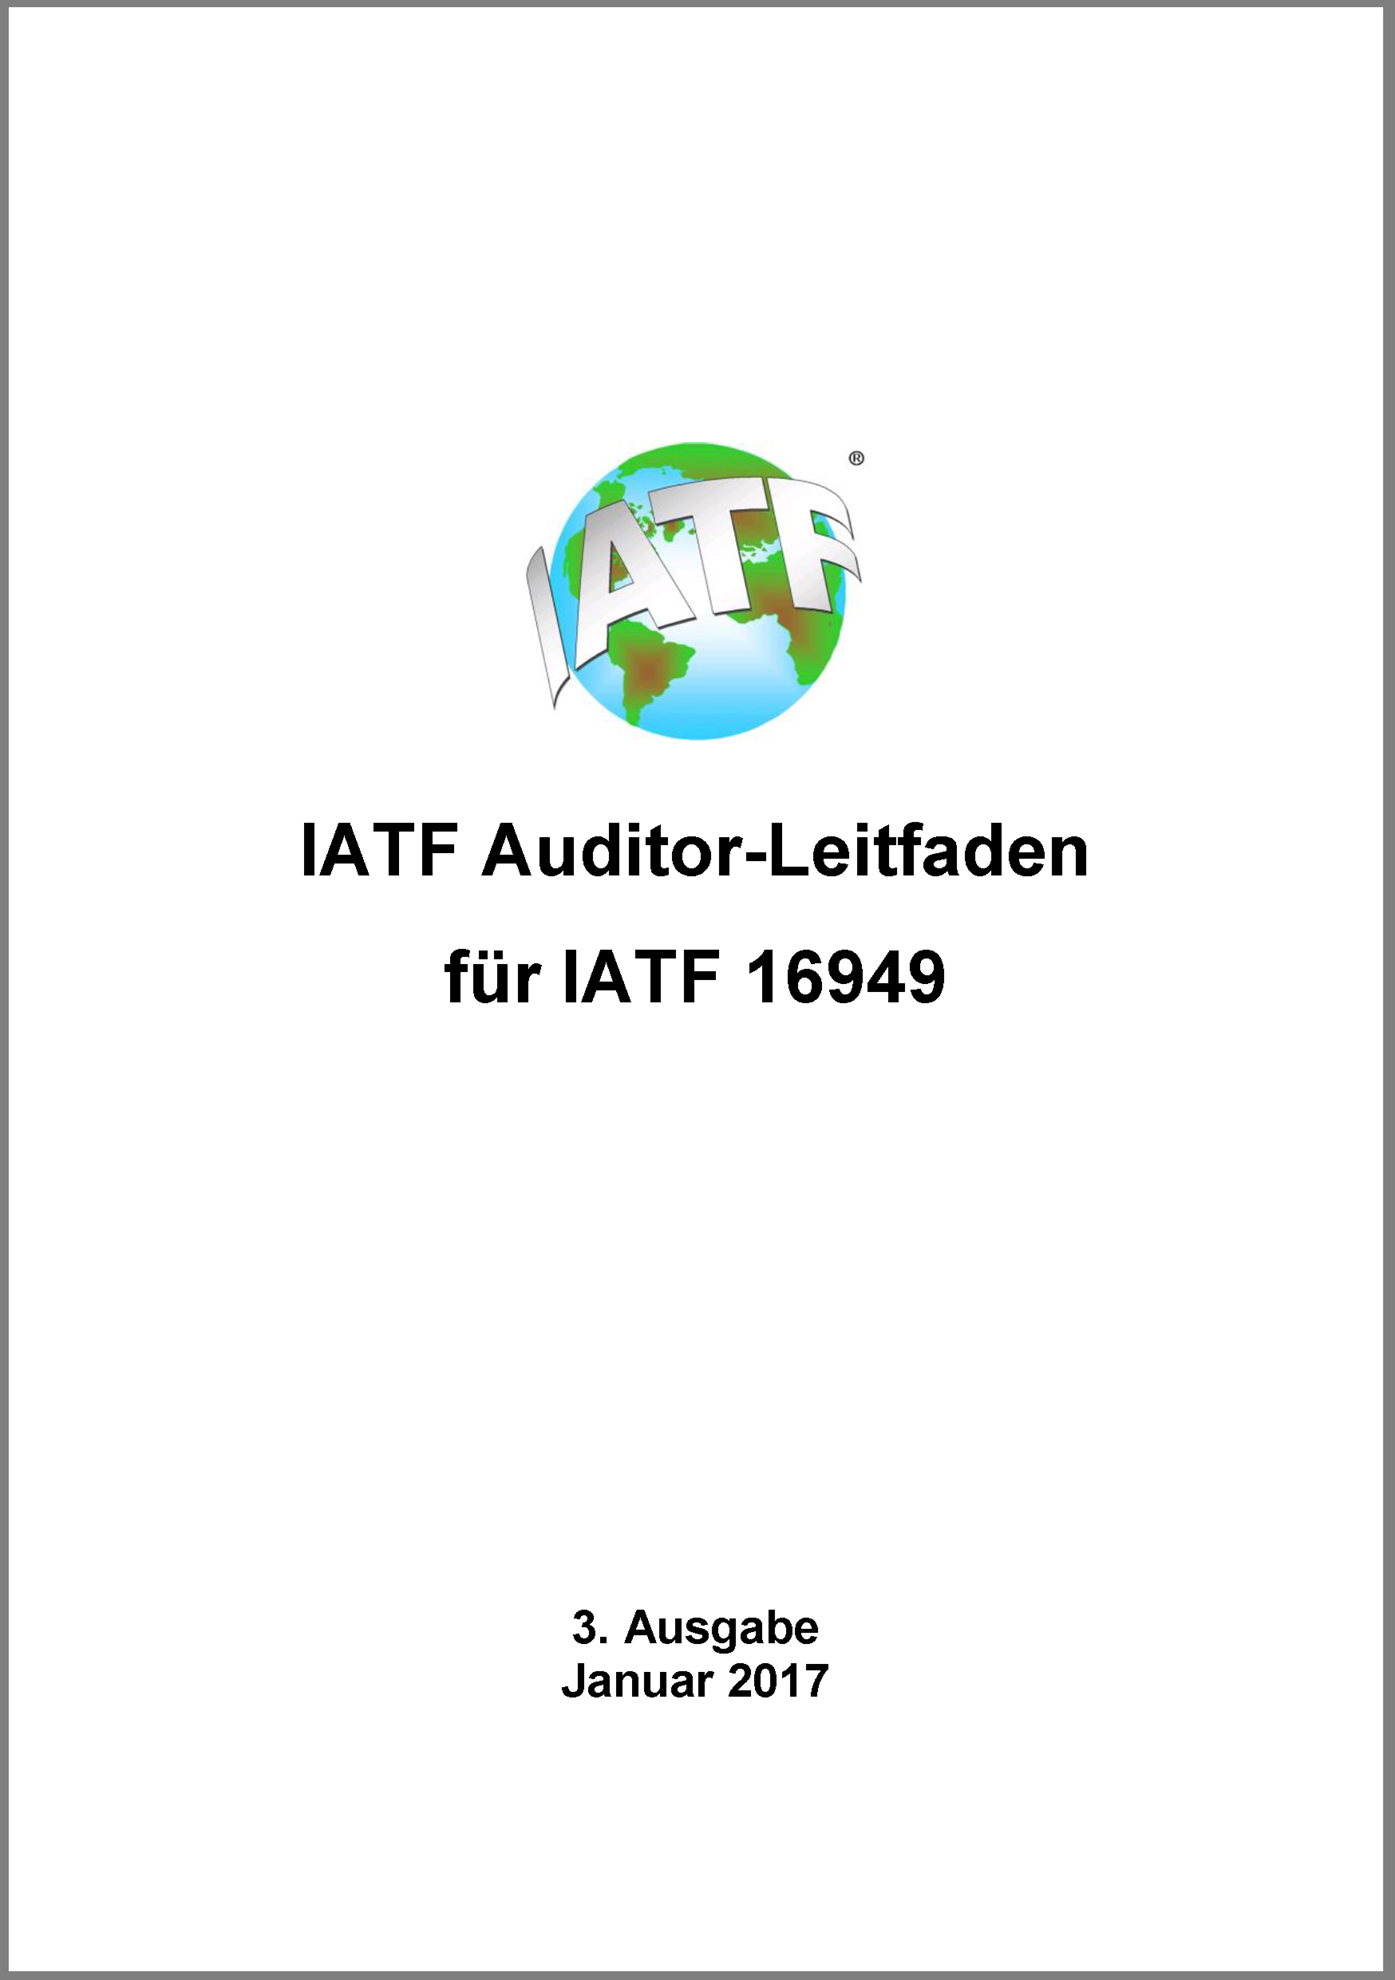 Picture of IATF Auditor-Leitfaden 2017